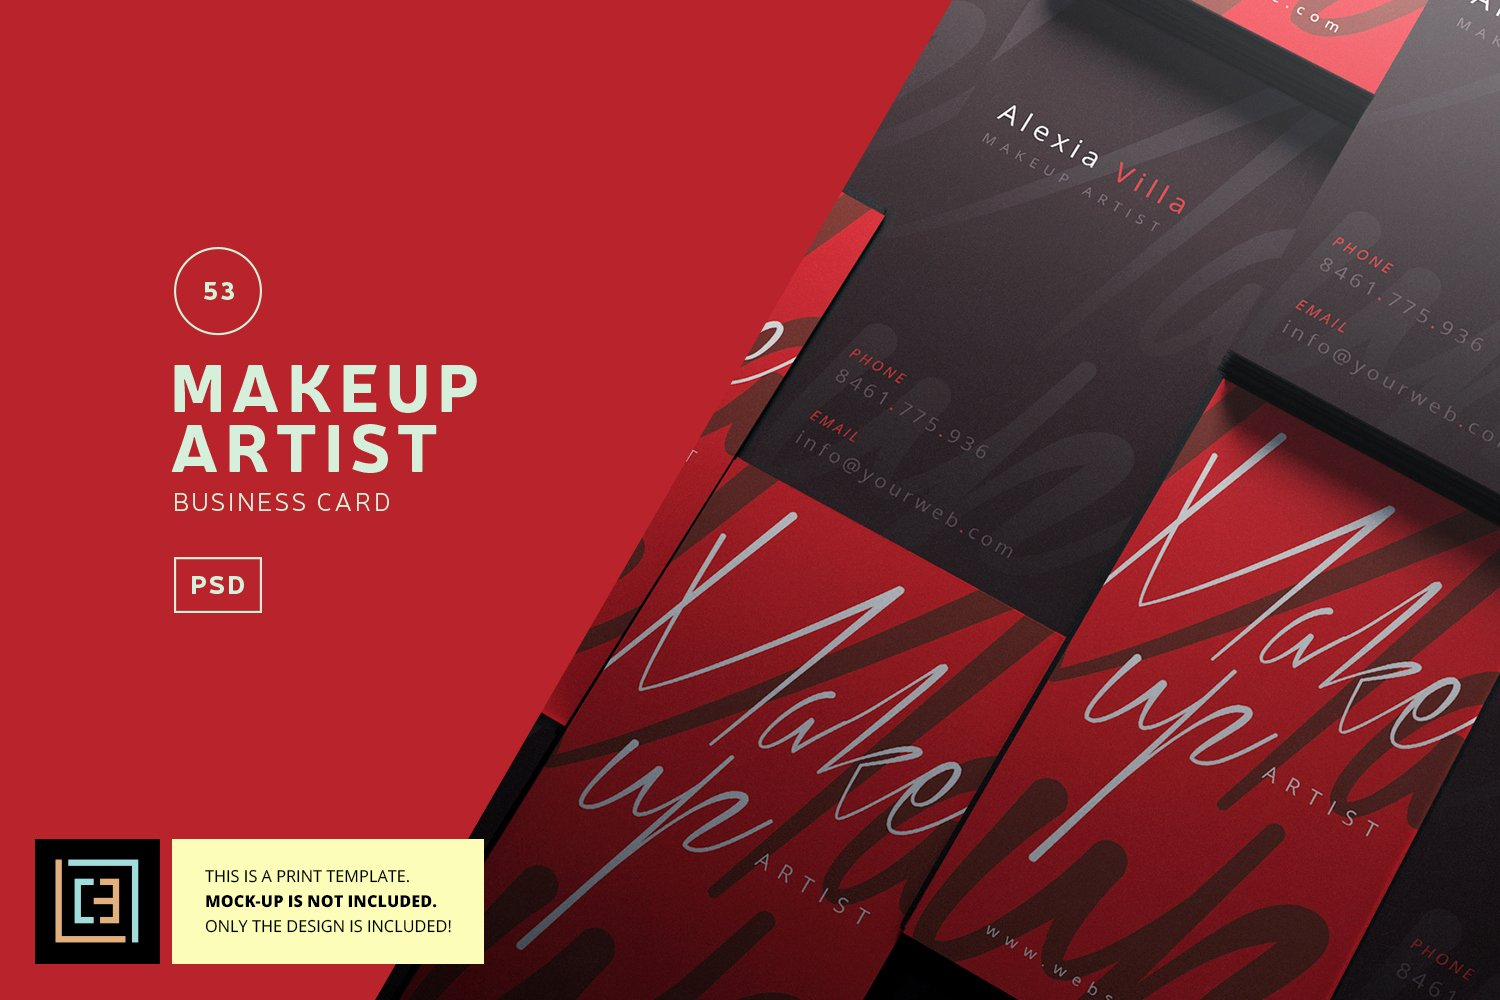 Makeup Artist Business Cards Ideas Inspirational Makeup Artist Business Card Bc053